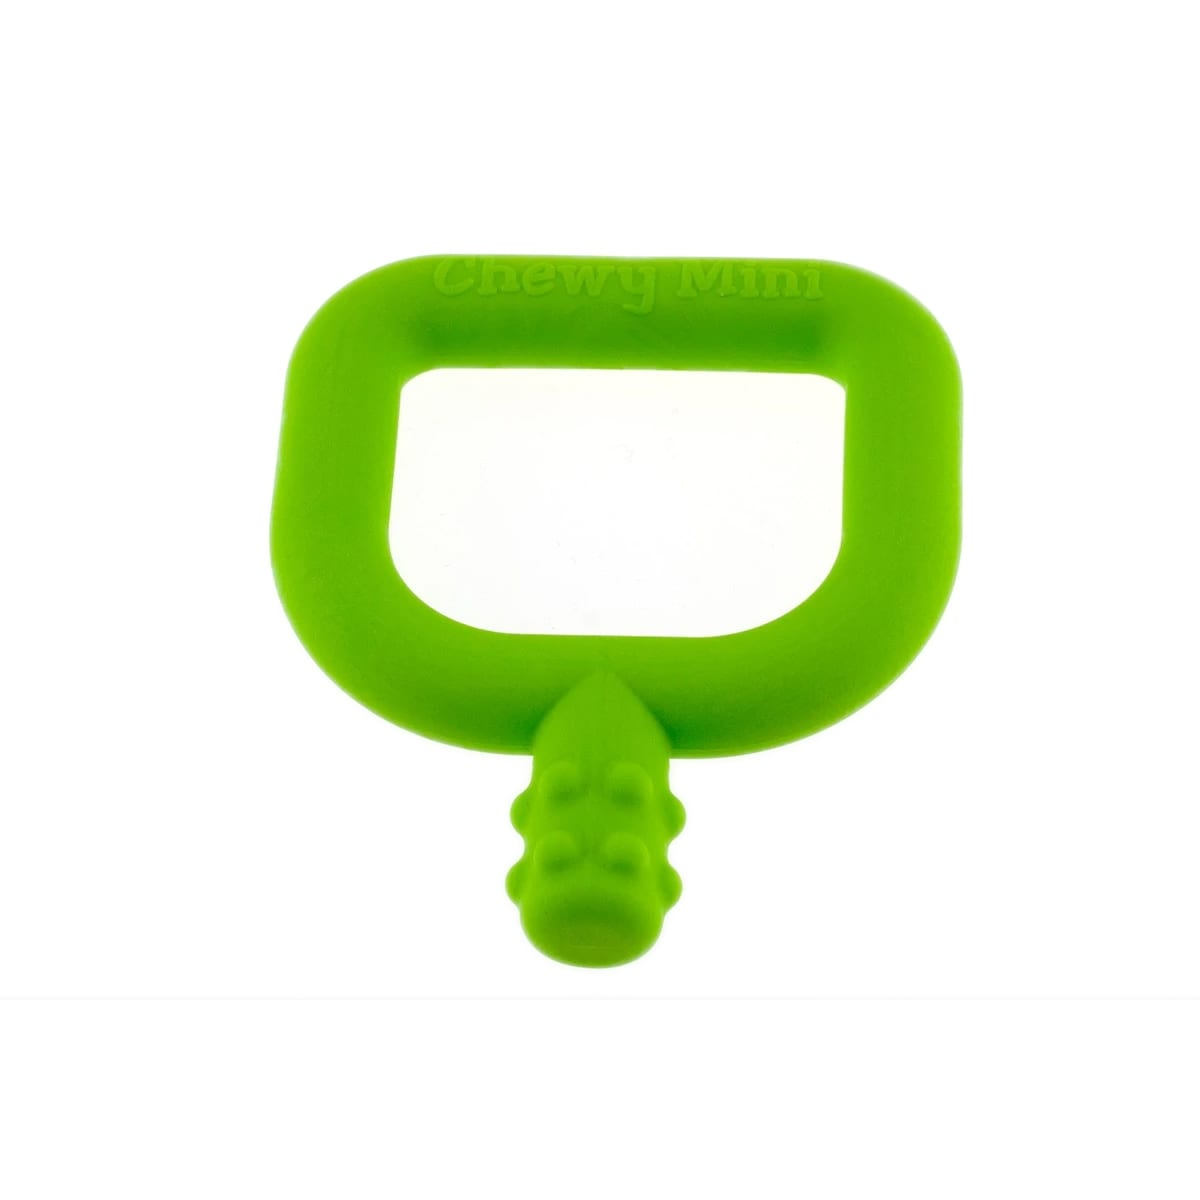 MINI CHEWY - GREEN KNOBBY - STAGE 2 TEETHER